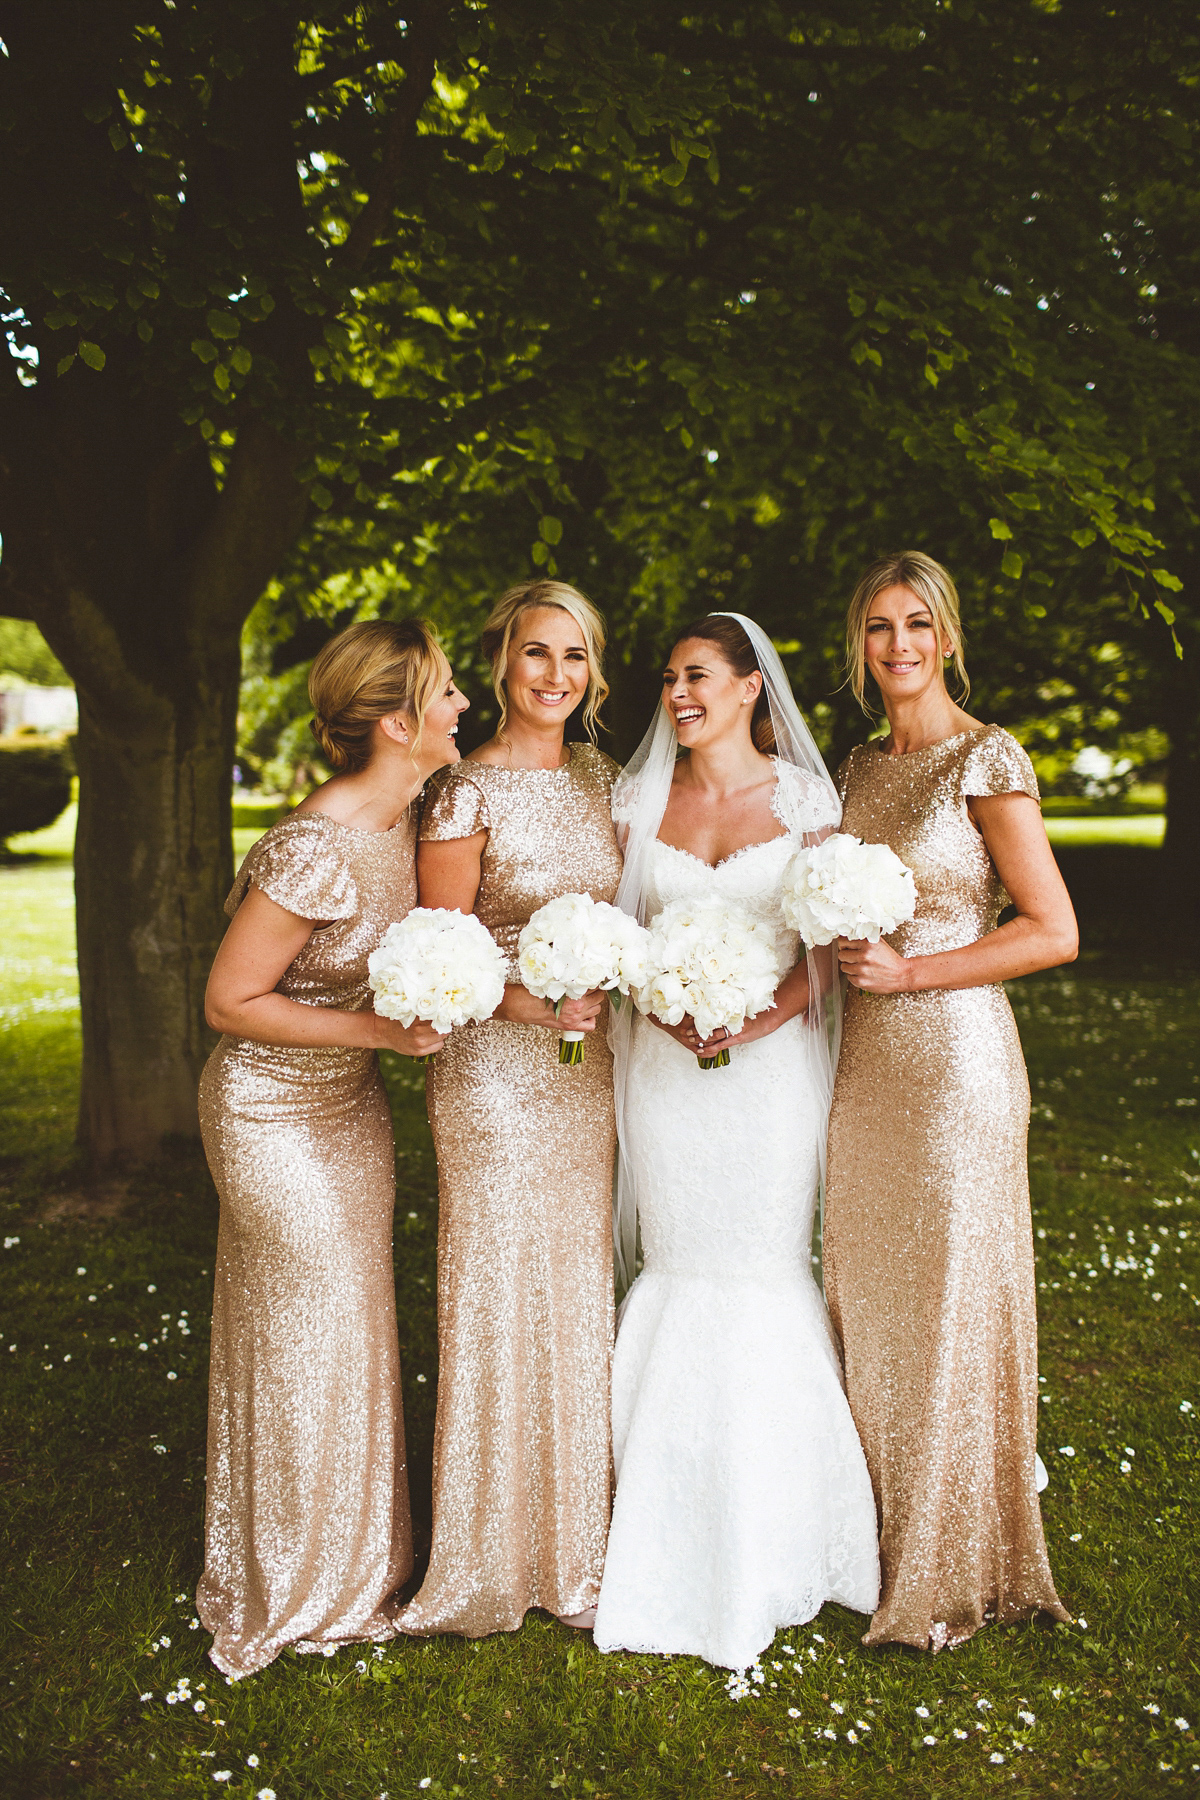 Bridesmaids in Sequin Gold Gowns and a Classically Elegant Caroline Castigliano Bride